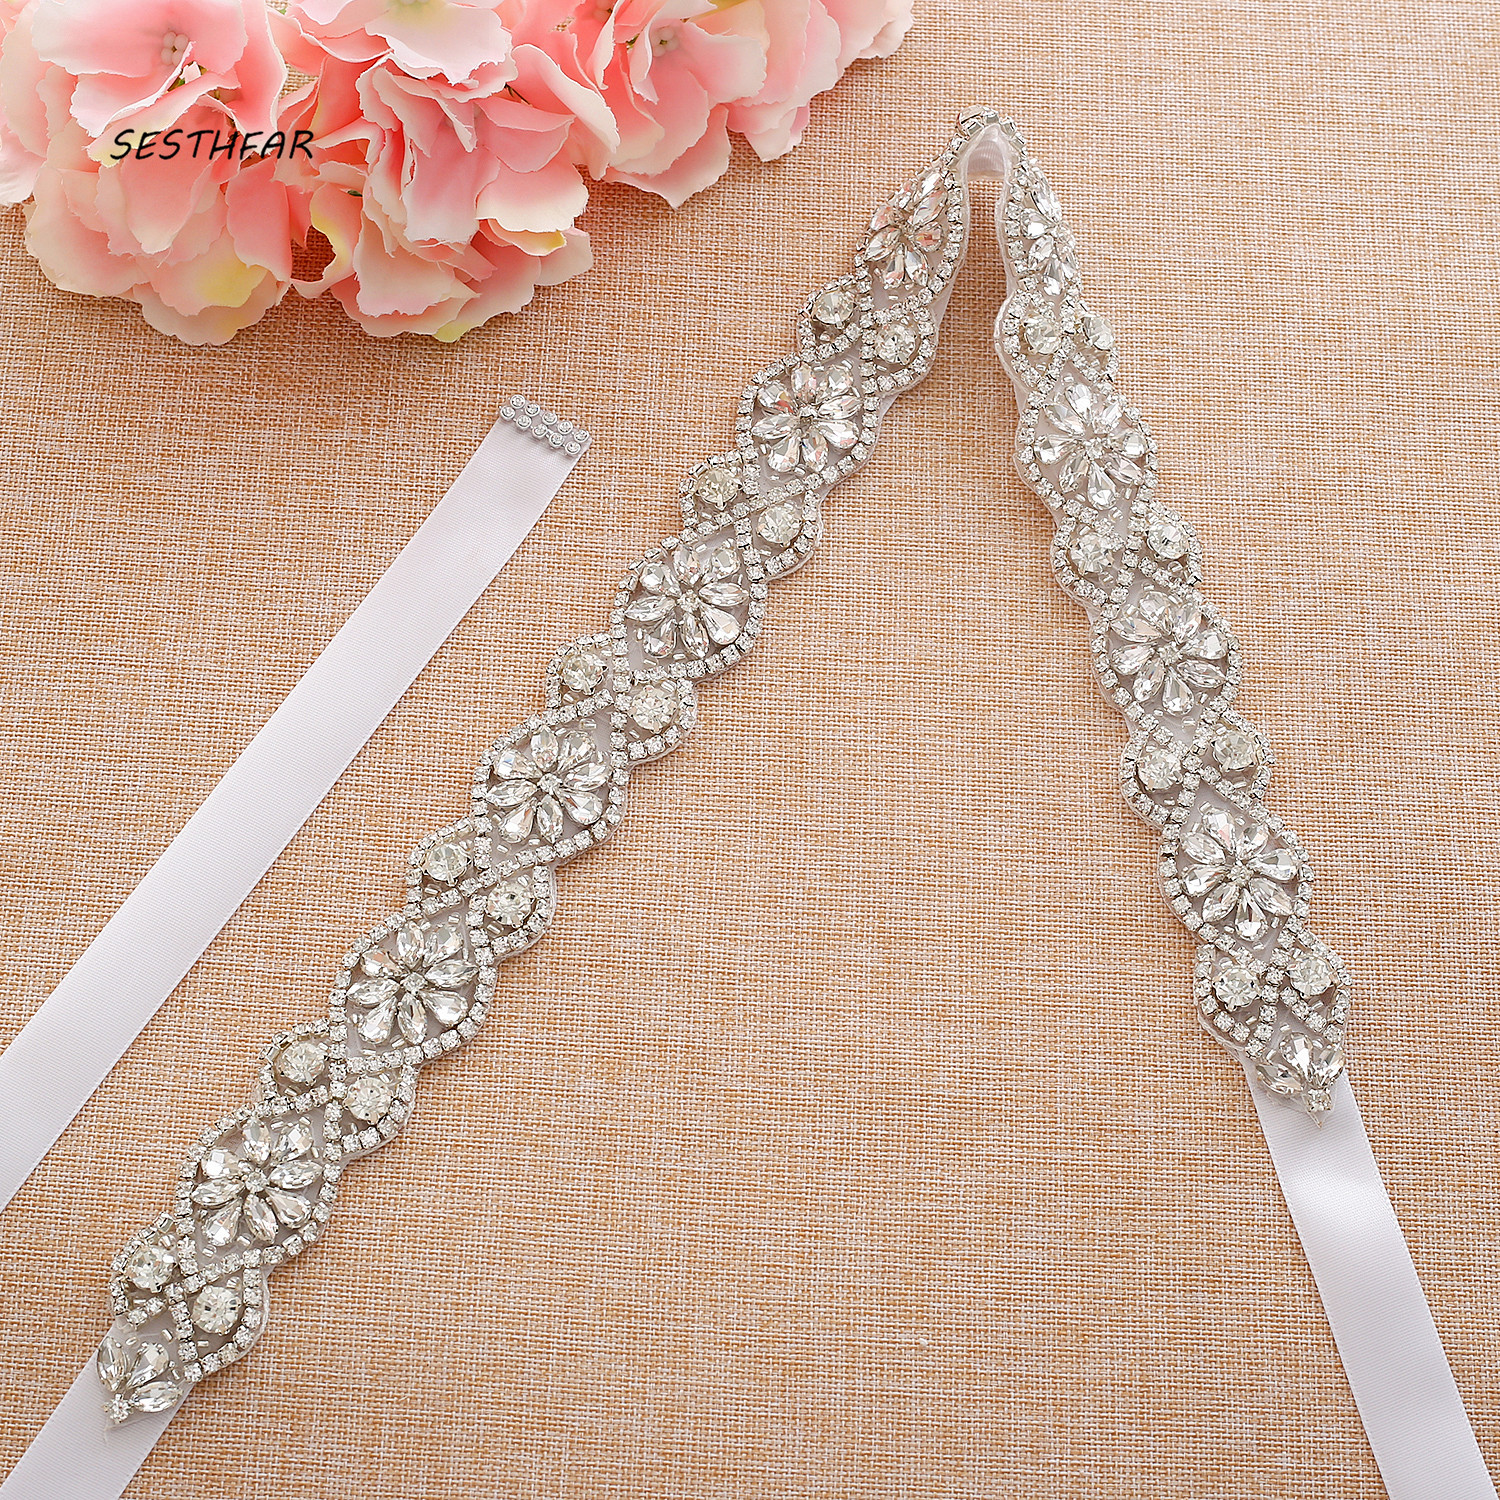 Rhinestones Thin Flower Bridal Belt Diamond Wedding Belt Ribbon Crystal Bridal Sash For Wedding Gown J194S